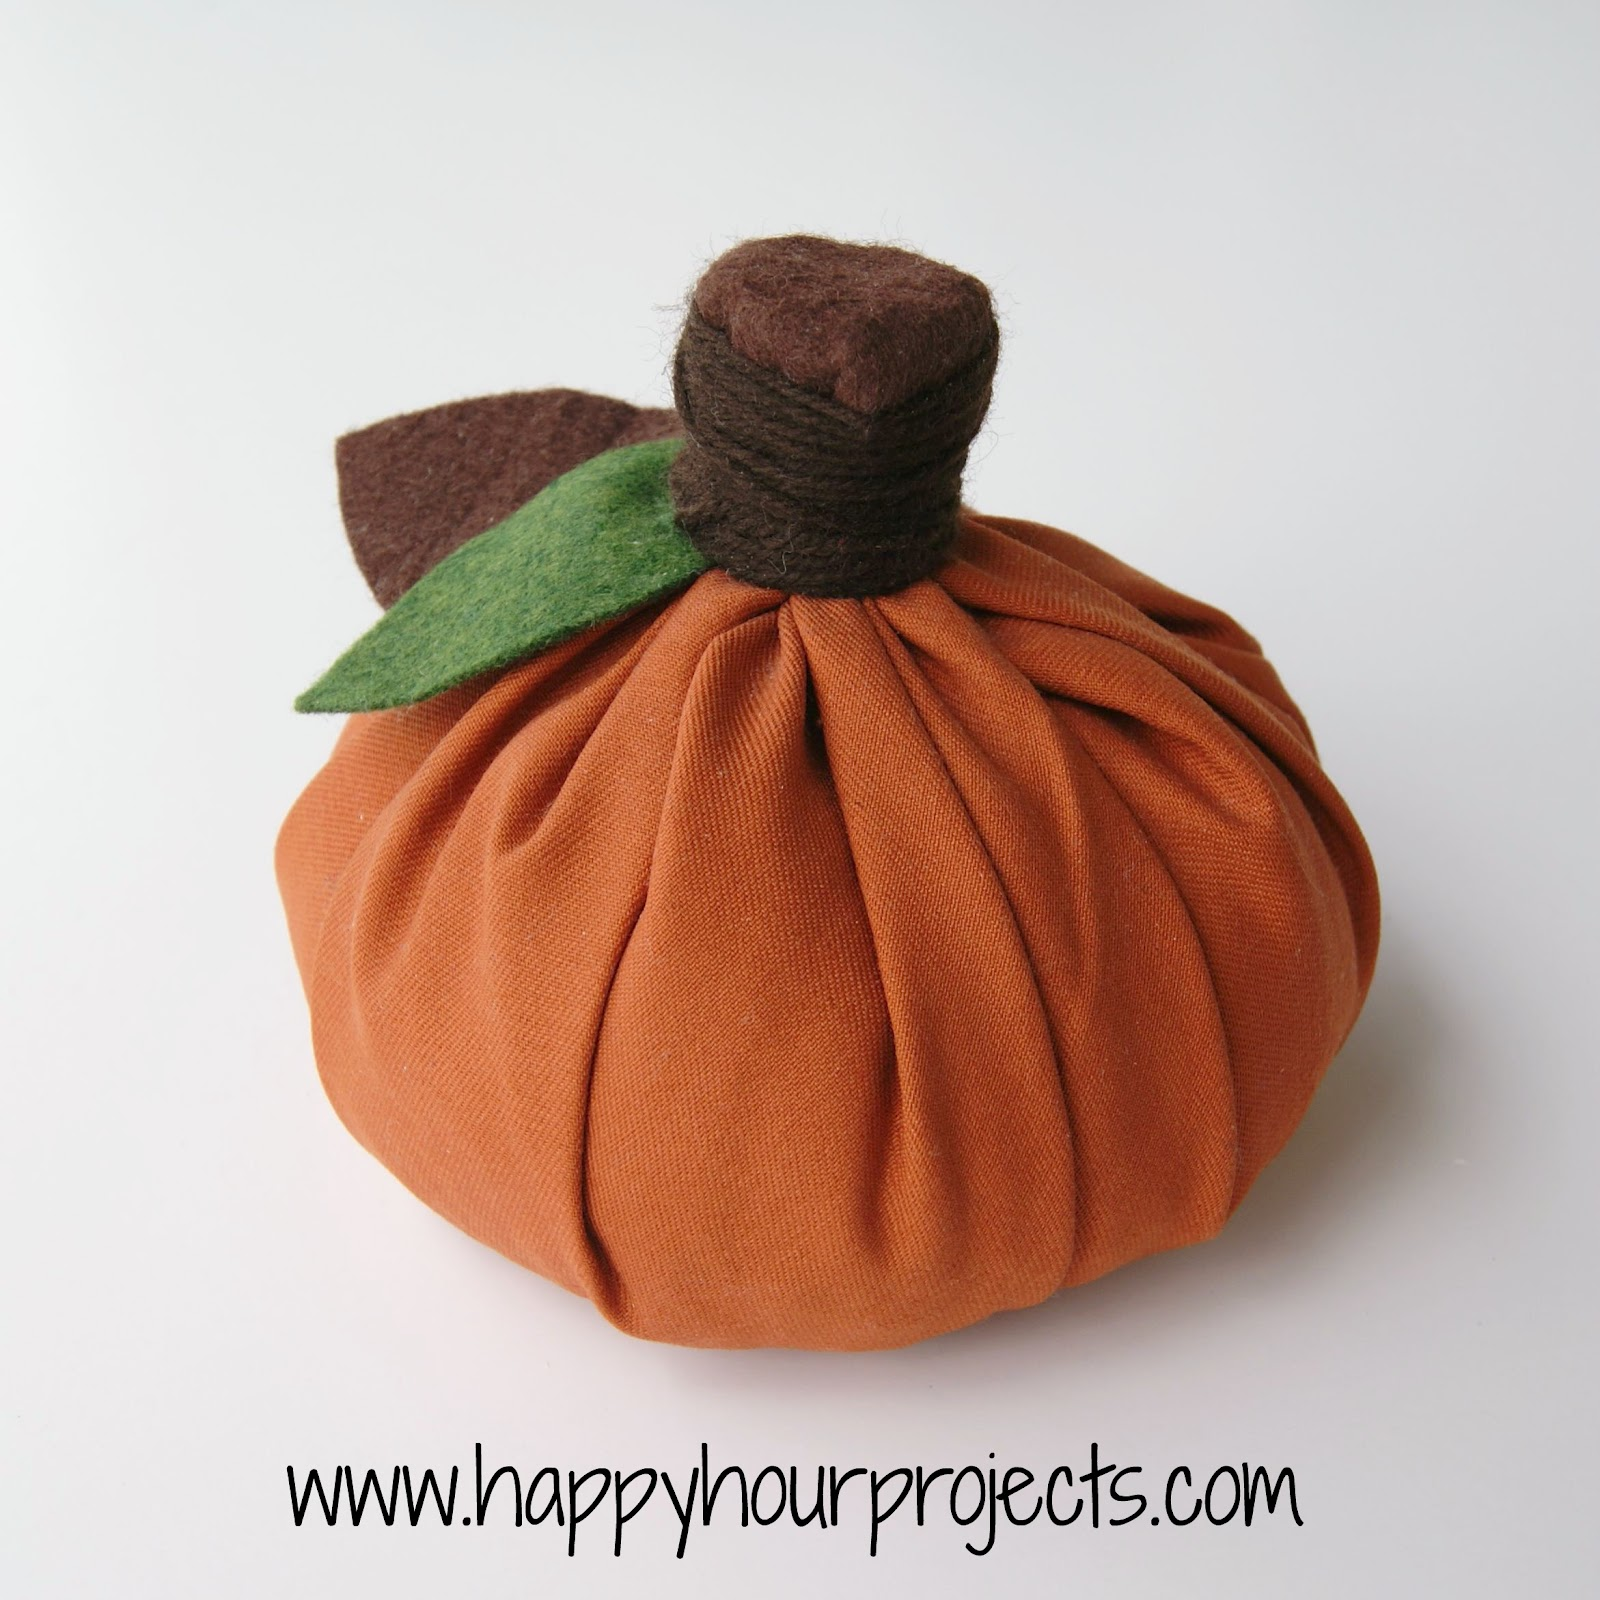 No-Sew Fabric Pumpkin